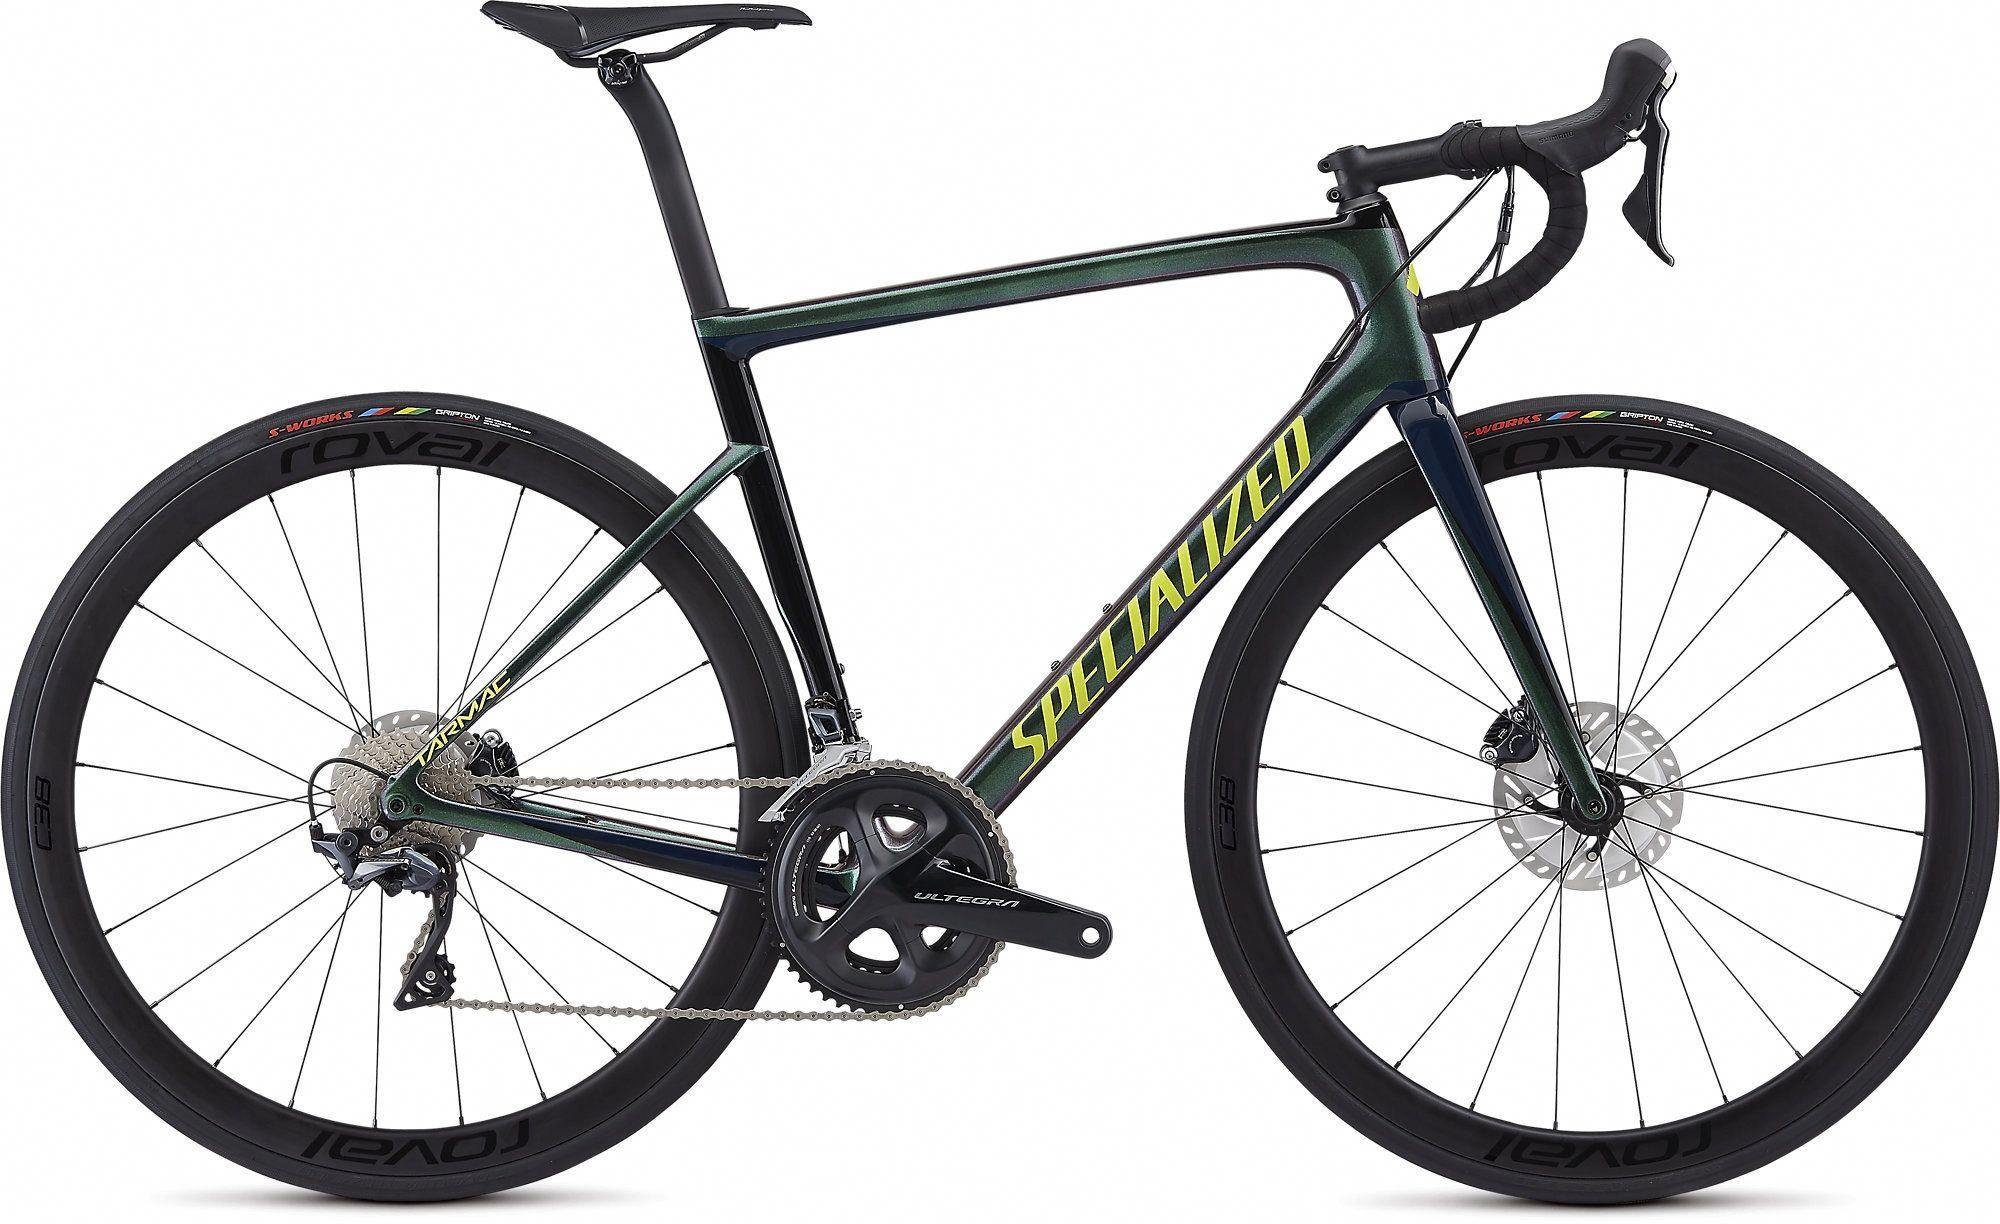 2019 Specialized Tarmac Disc Expert In Chameleon Green